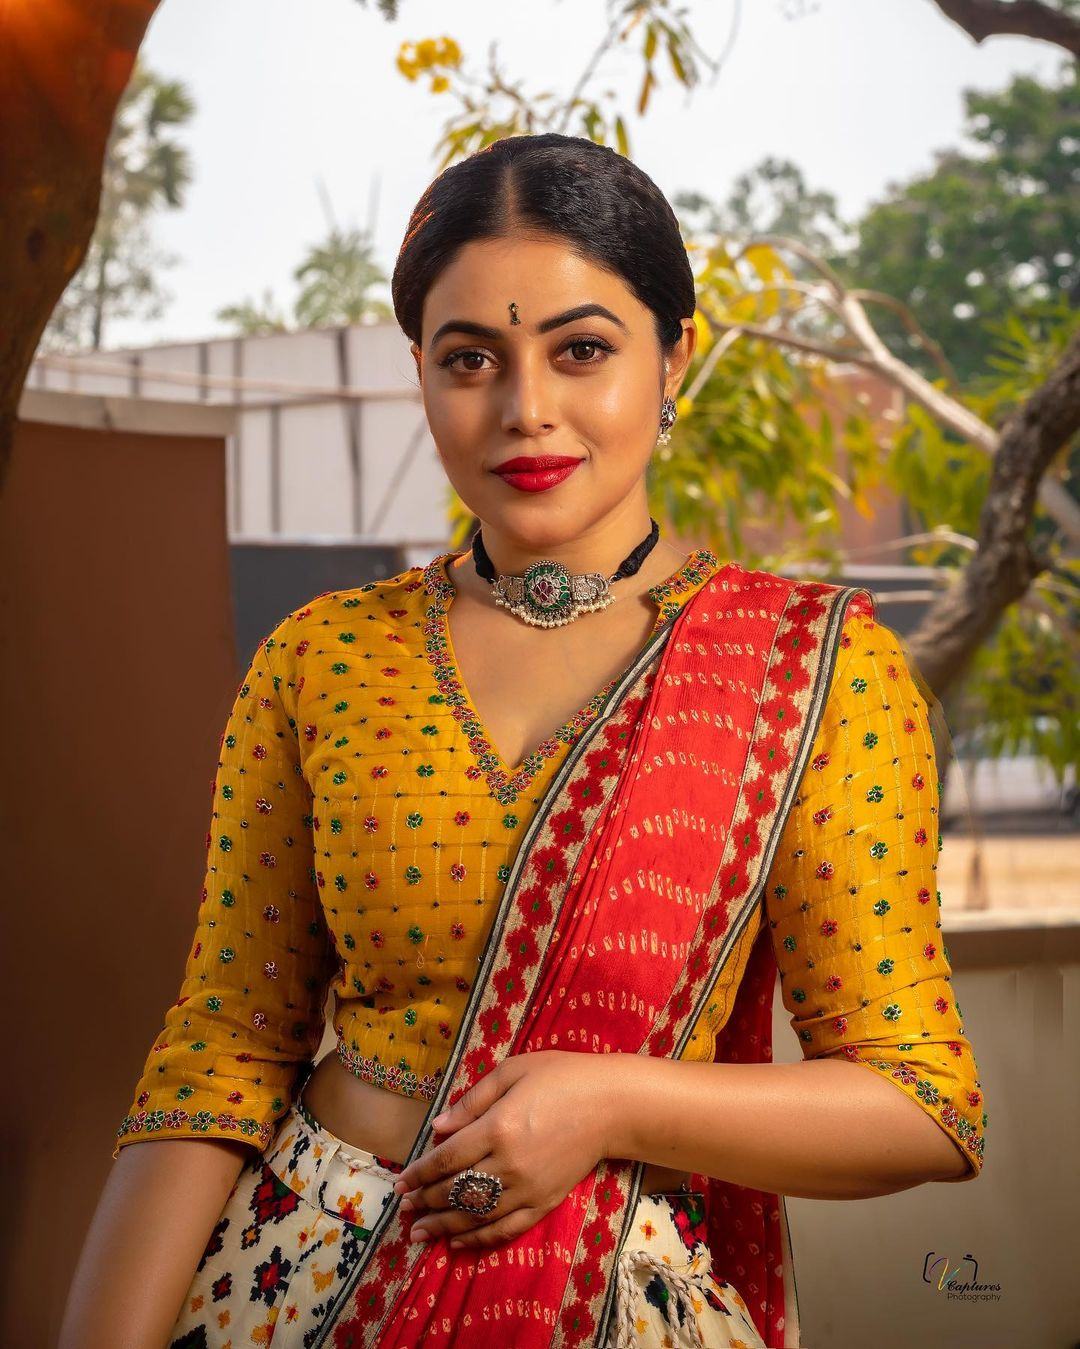 Poorna showcases her beauty in a traditional attire